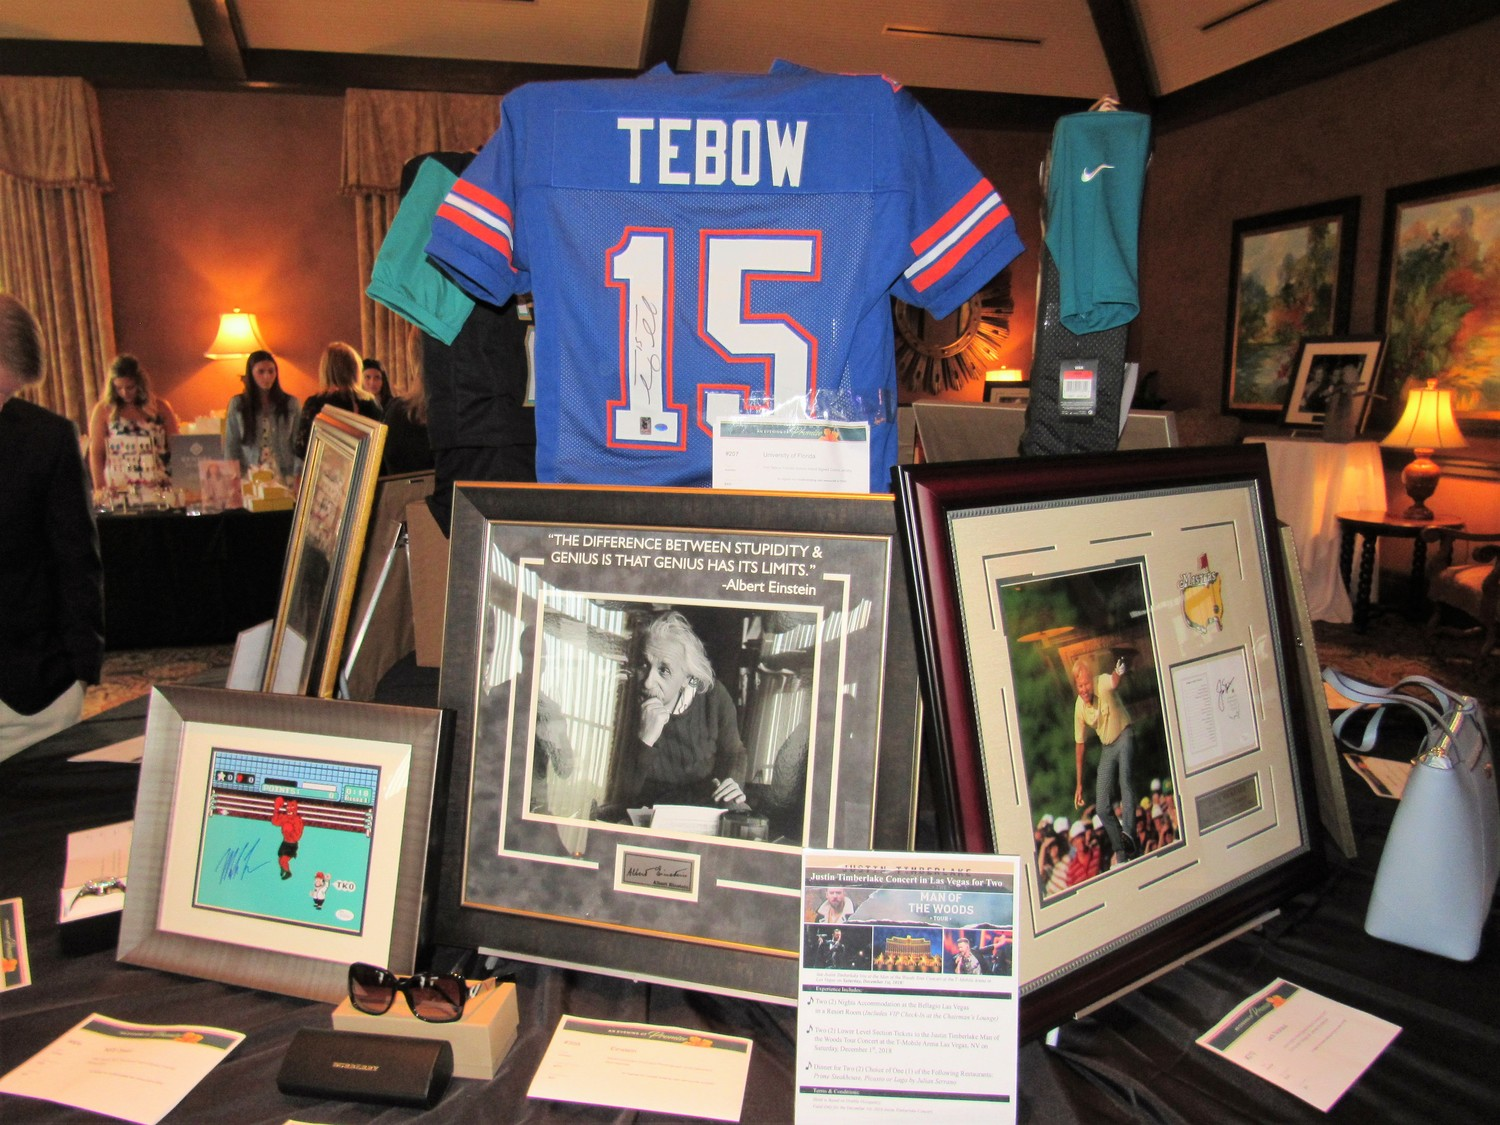 Autographed items are auctioned off to benefit Nemours Children's Specialty Care in Jacksonville, including a Tim Tebow football jersey.